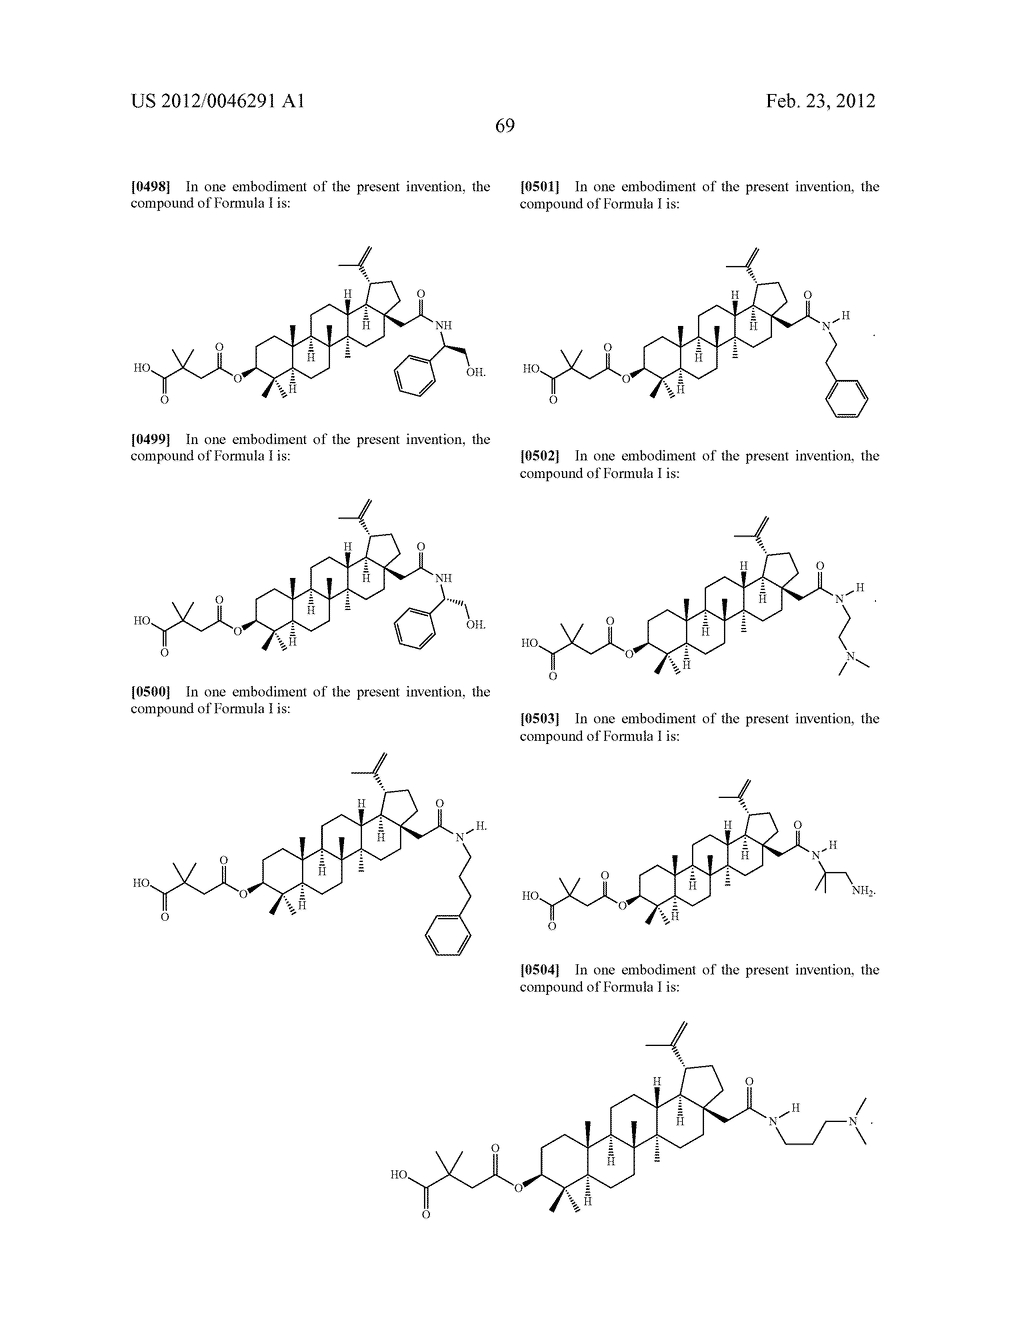 Extended Triterpene Derivatives - diagram, schematic, and image 71